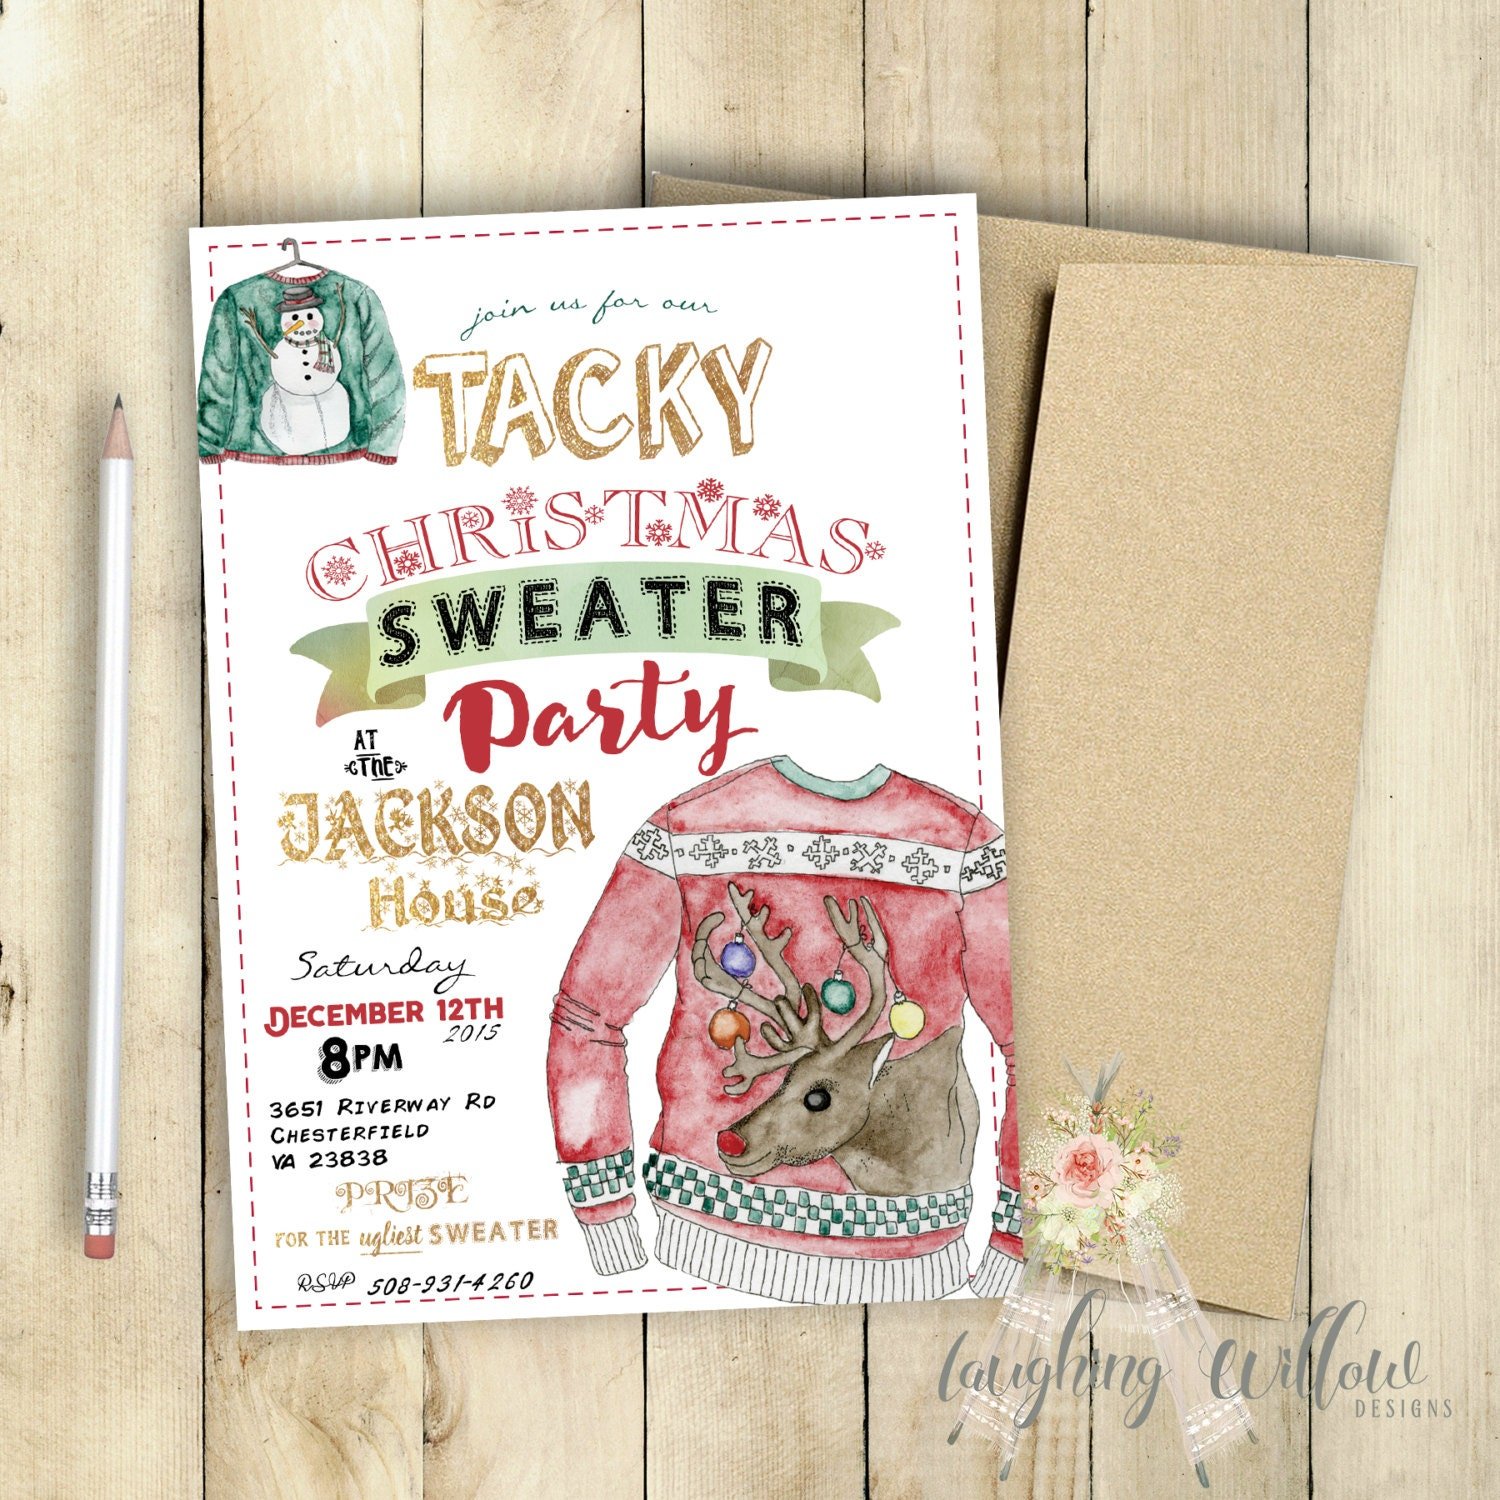 Christmas Jumper Party: Tacky Christmas Sweater Party Invitation Ugly Christmas